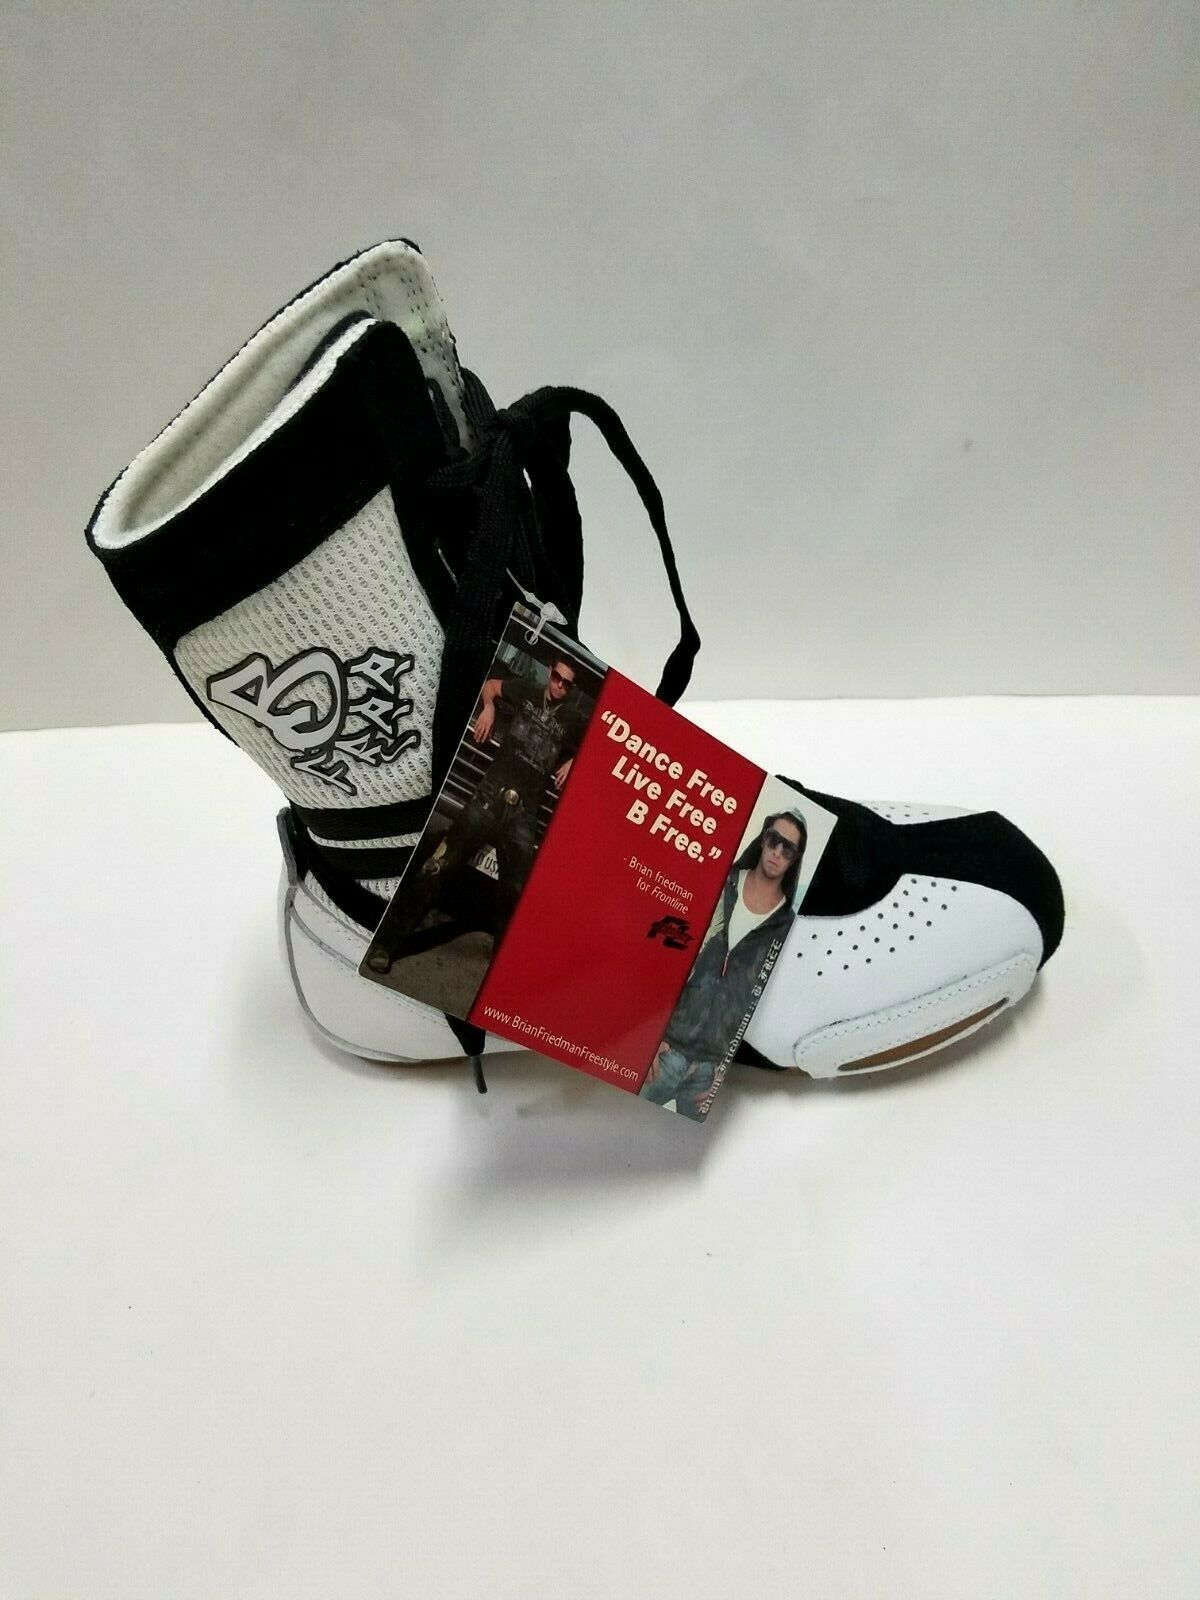 Hi-Top BF2 Adult Size 3M White/Black Dance Sneakers